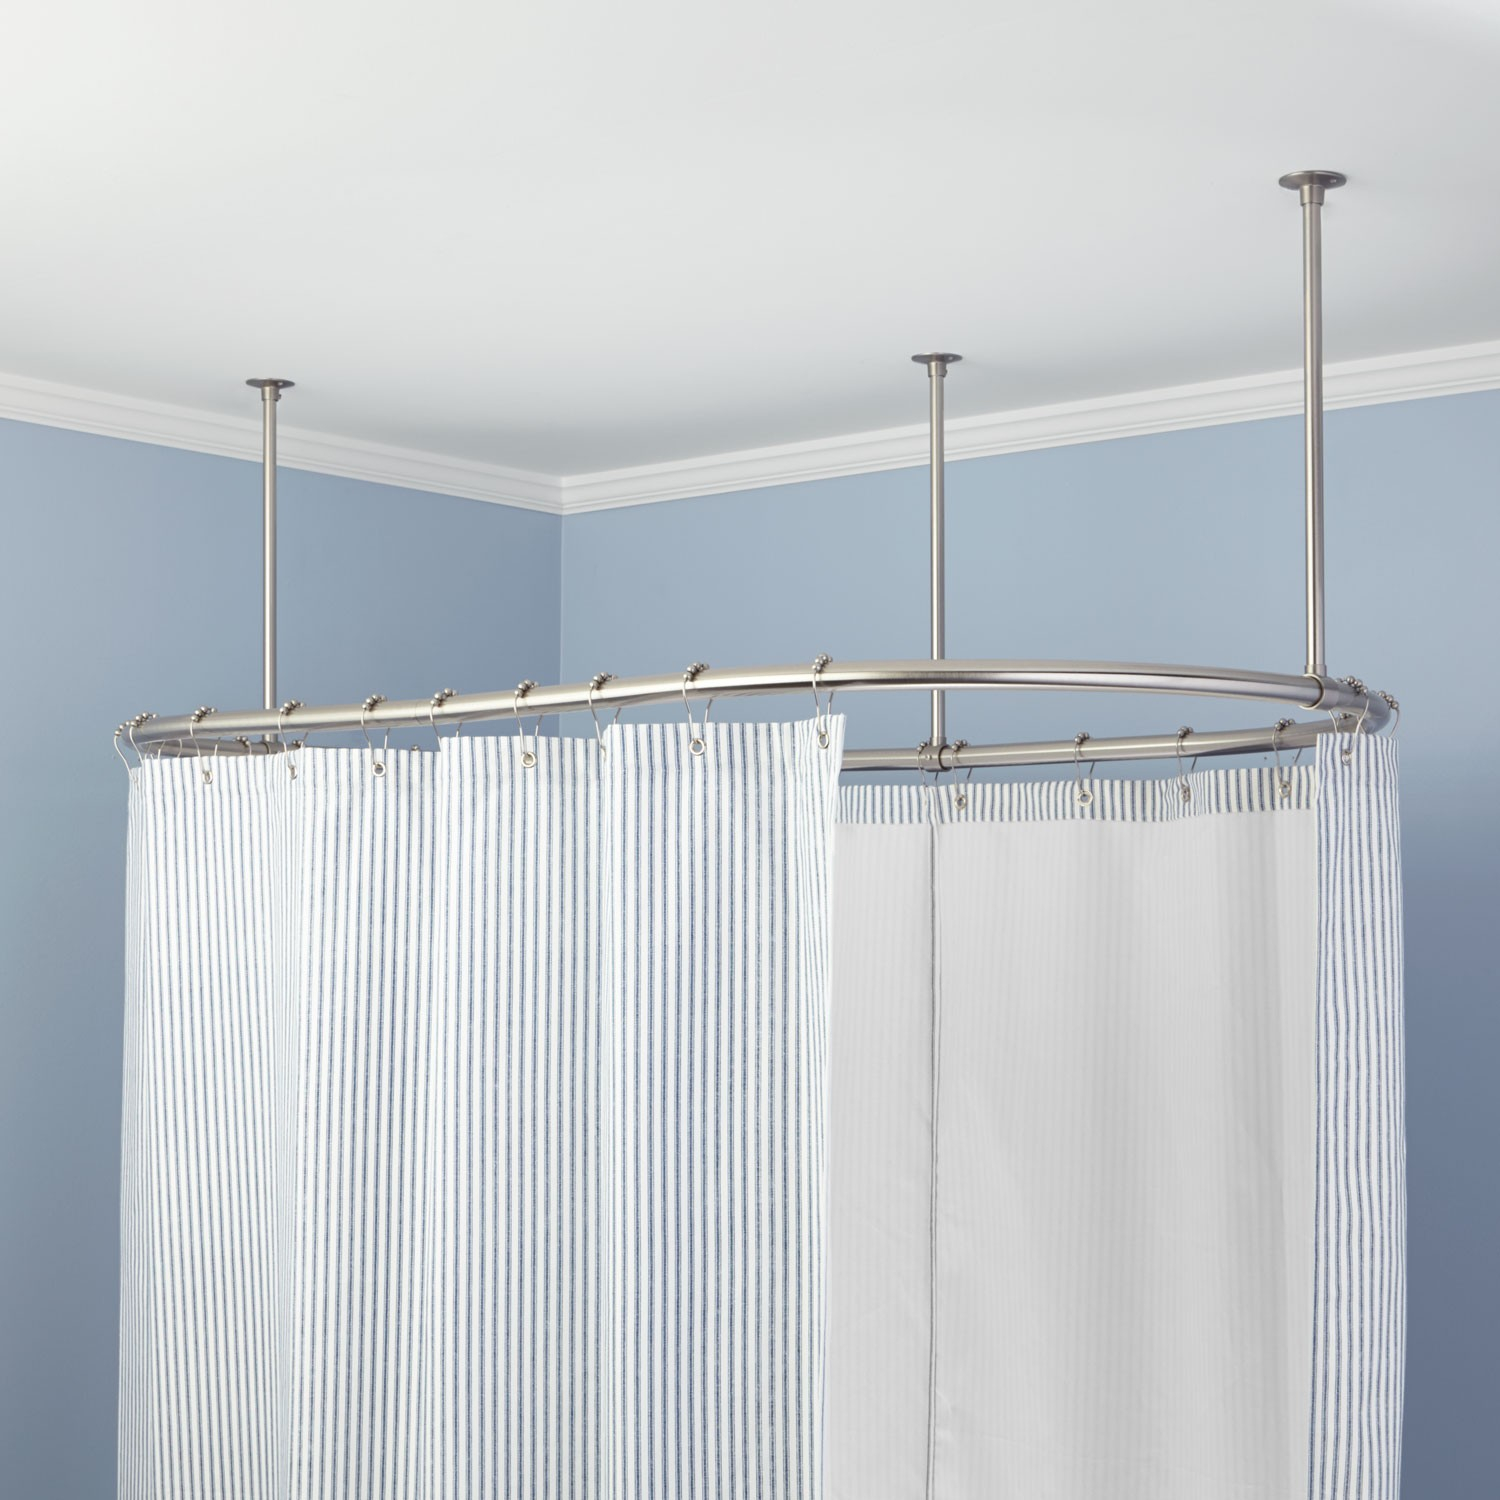 Clawfoot Tub Shower Curtain Rods Signature Hardware inside size 1500 X 1500